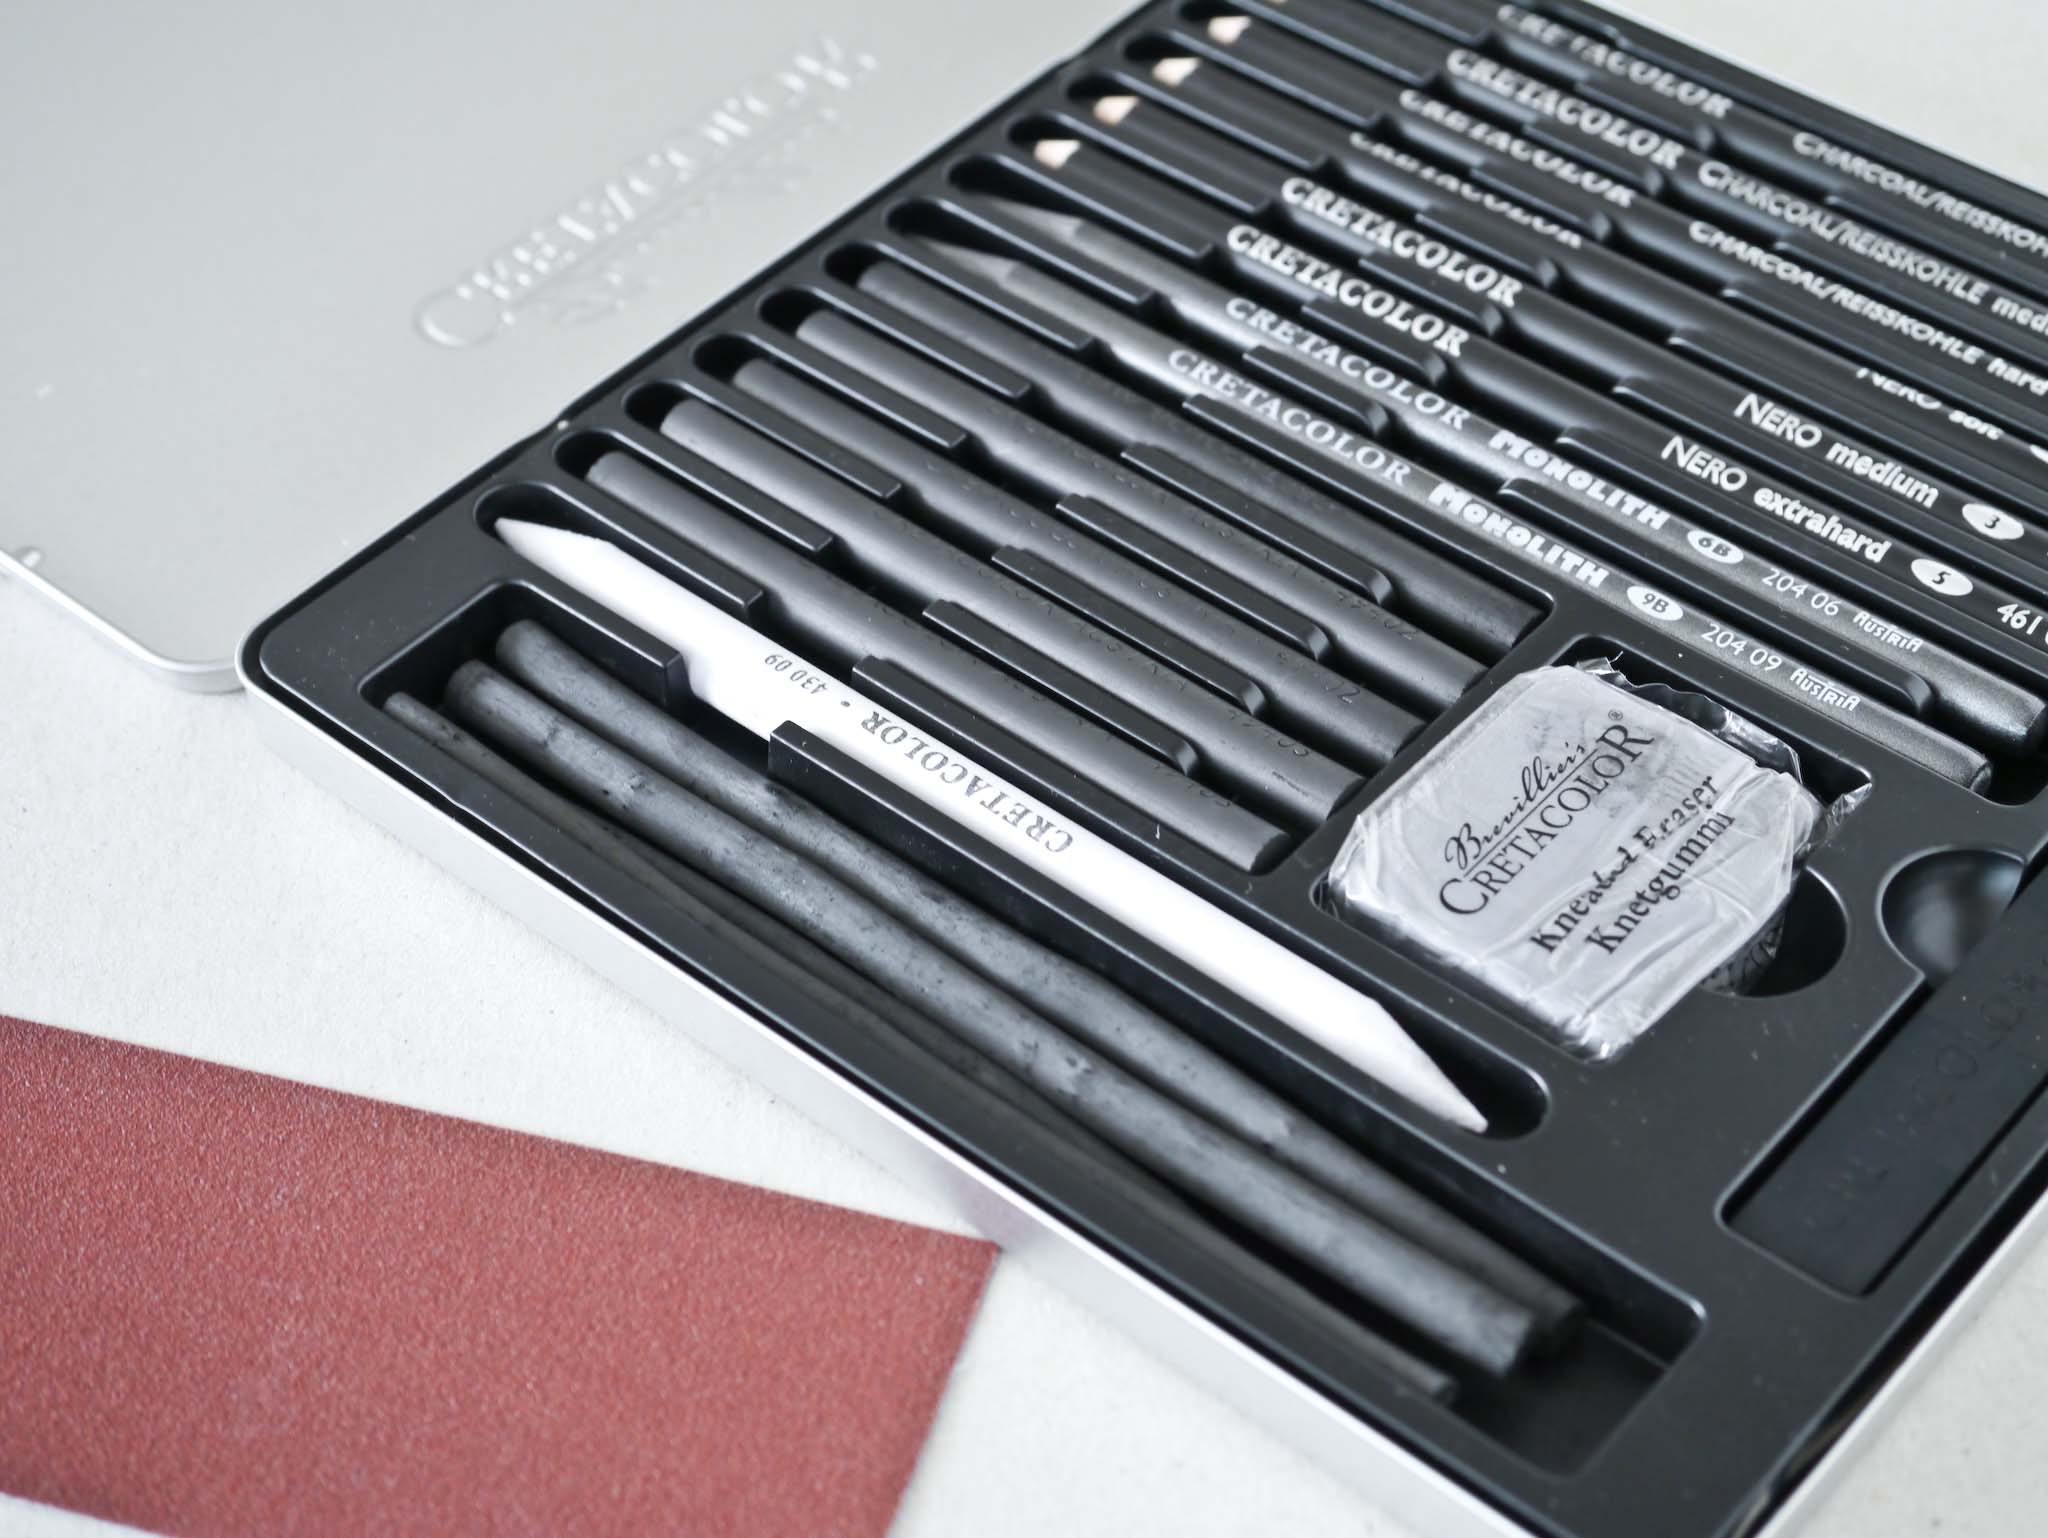 Cretacolor Black Box Charcoal Drawing Set